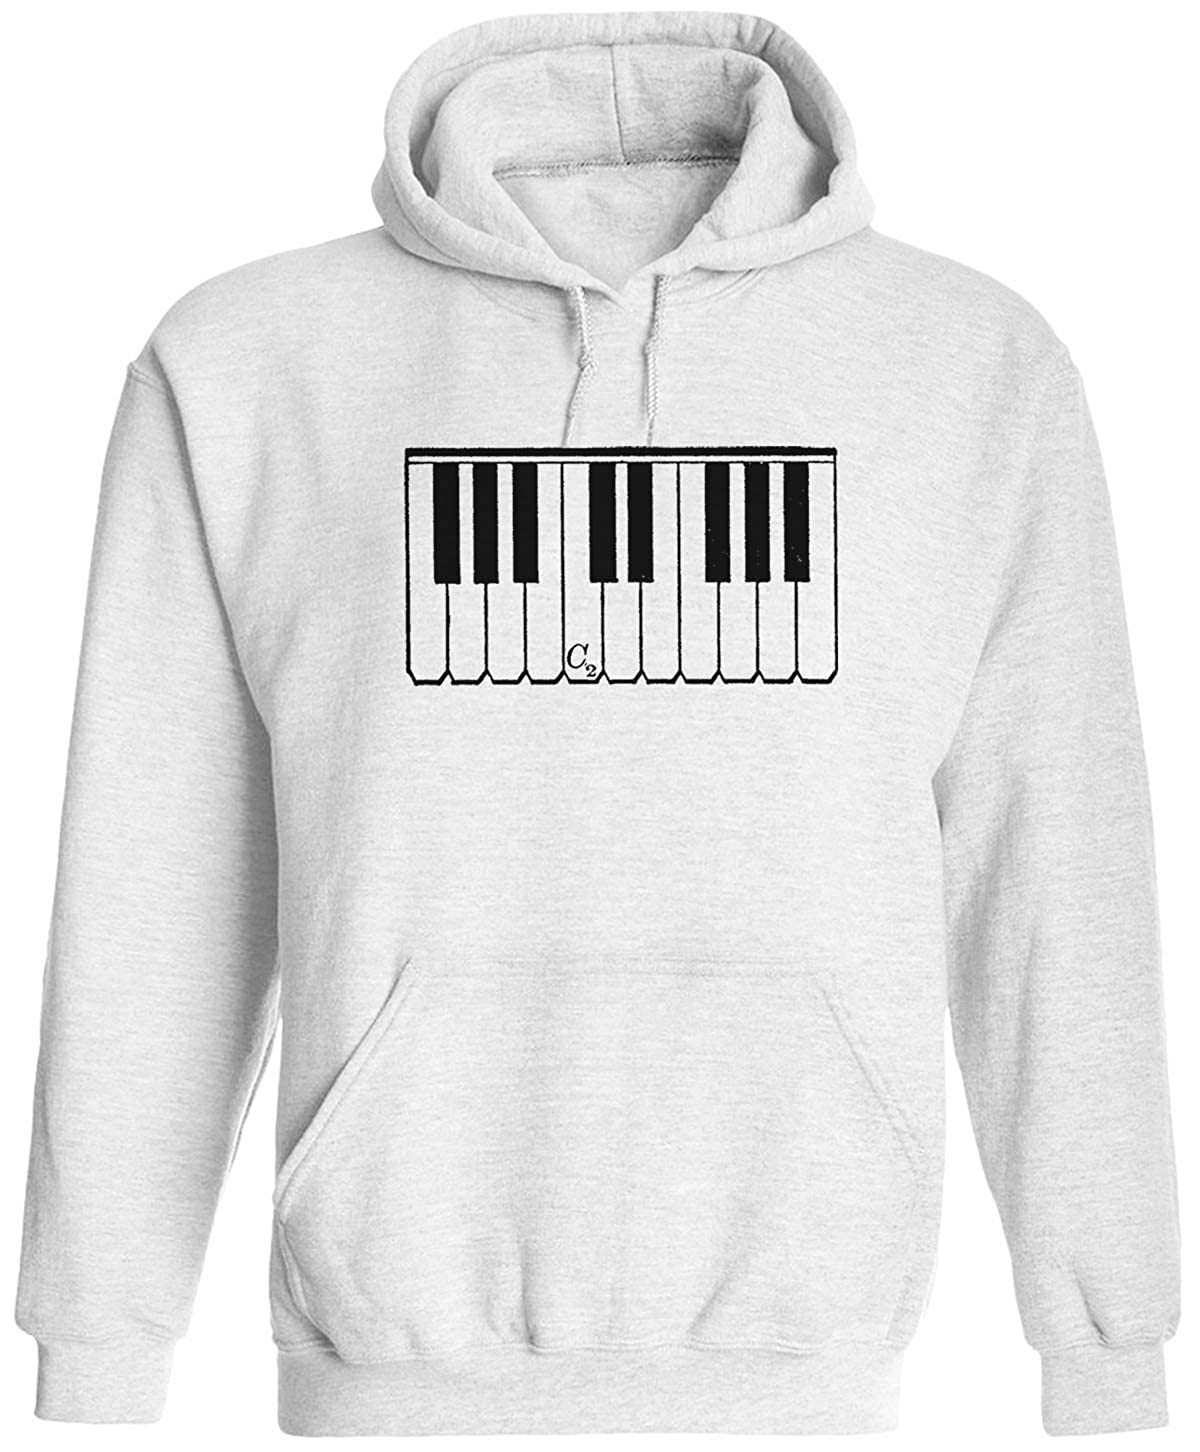 Austin Ink Apparel Small Piano Keys Unisex Adult Hooded Pullover Sweatshirt